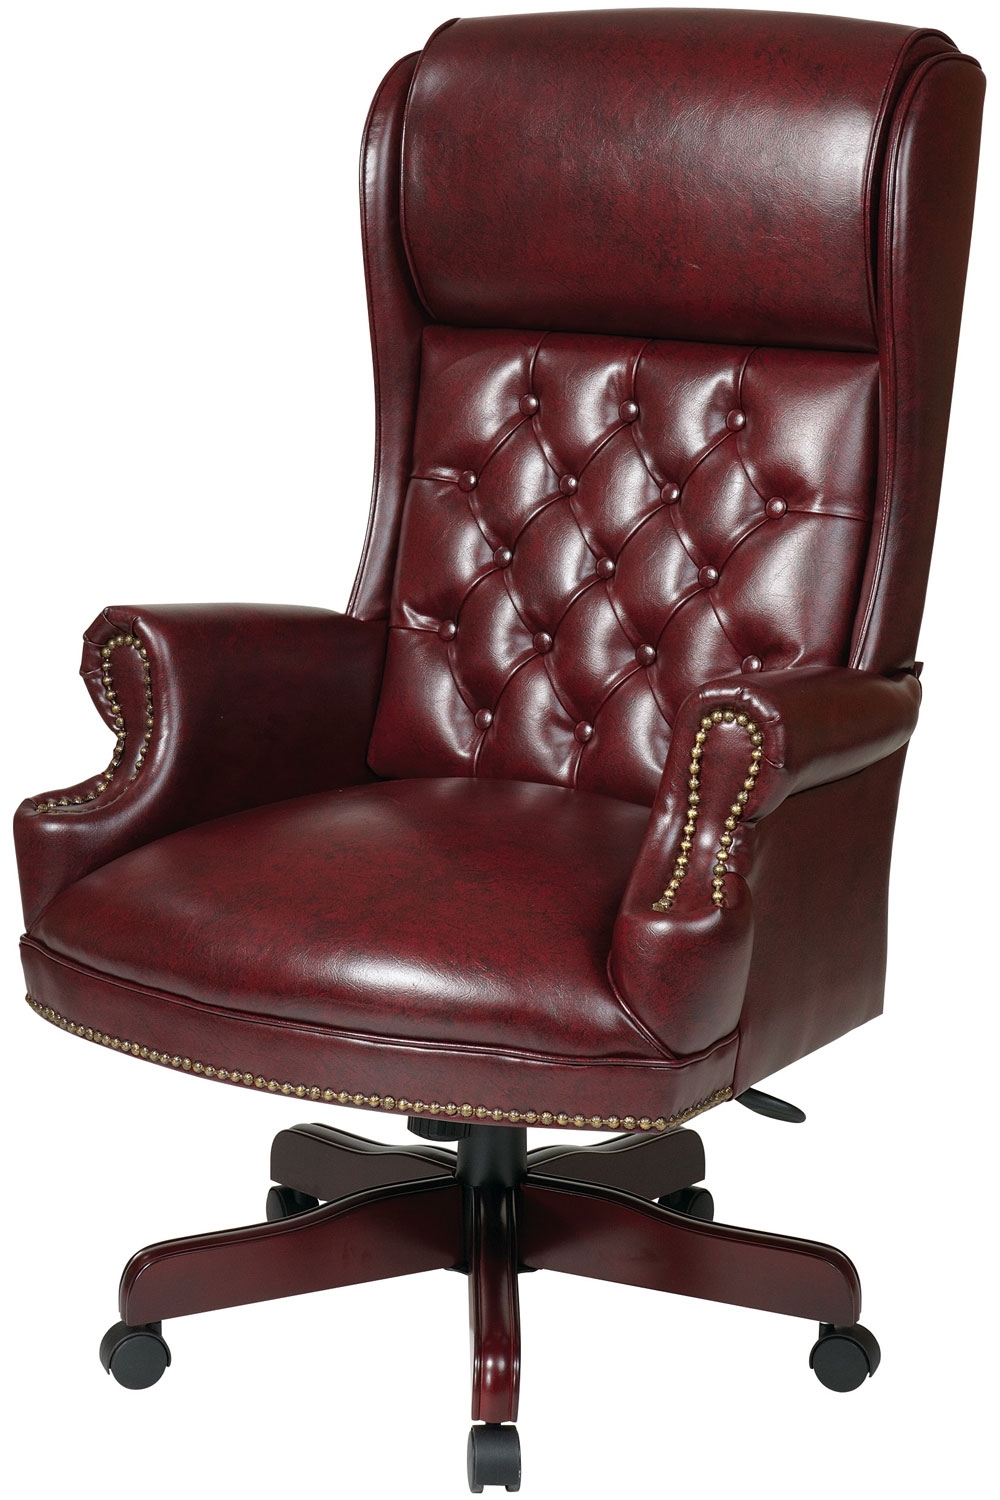 Tex228 Jt4 Office Star – Deluxe High Back Traditional Executive In Famous Executive Office Swivel Chairs (View 5 of 20)